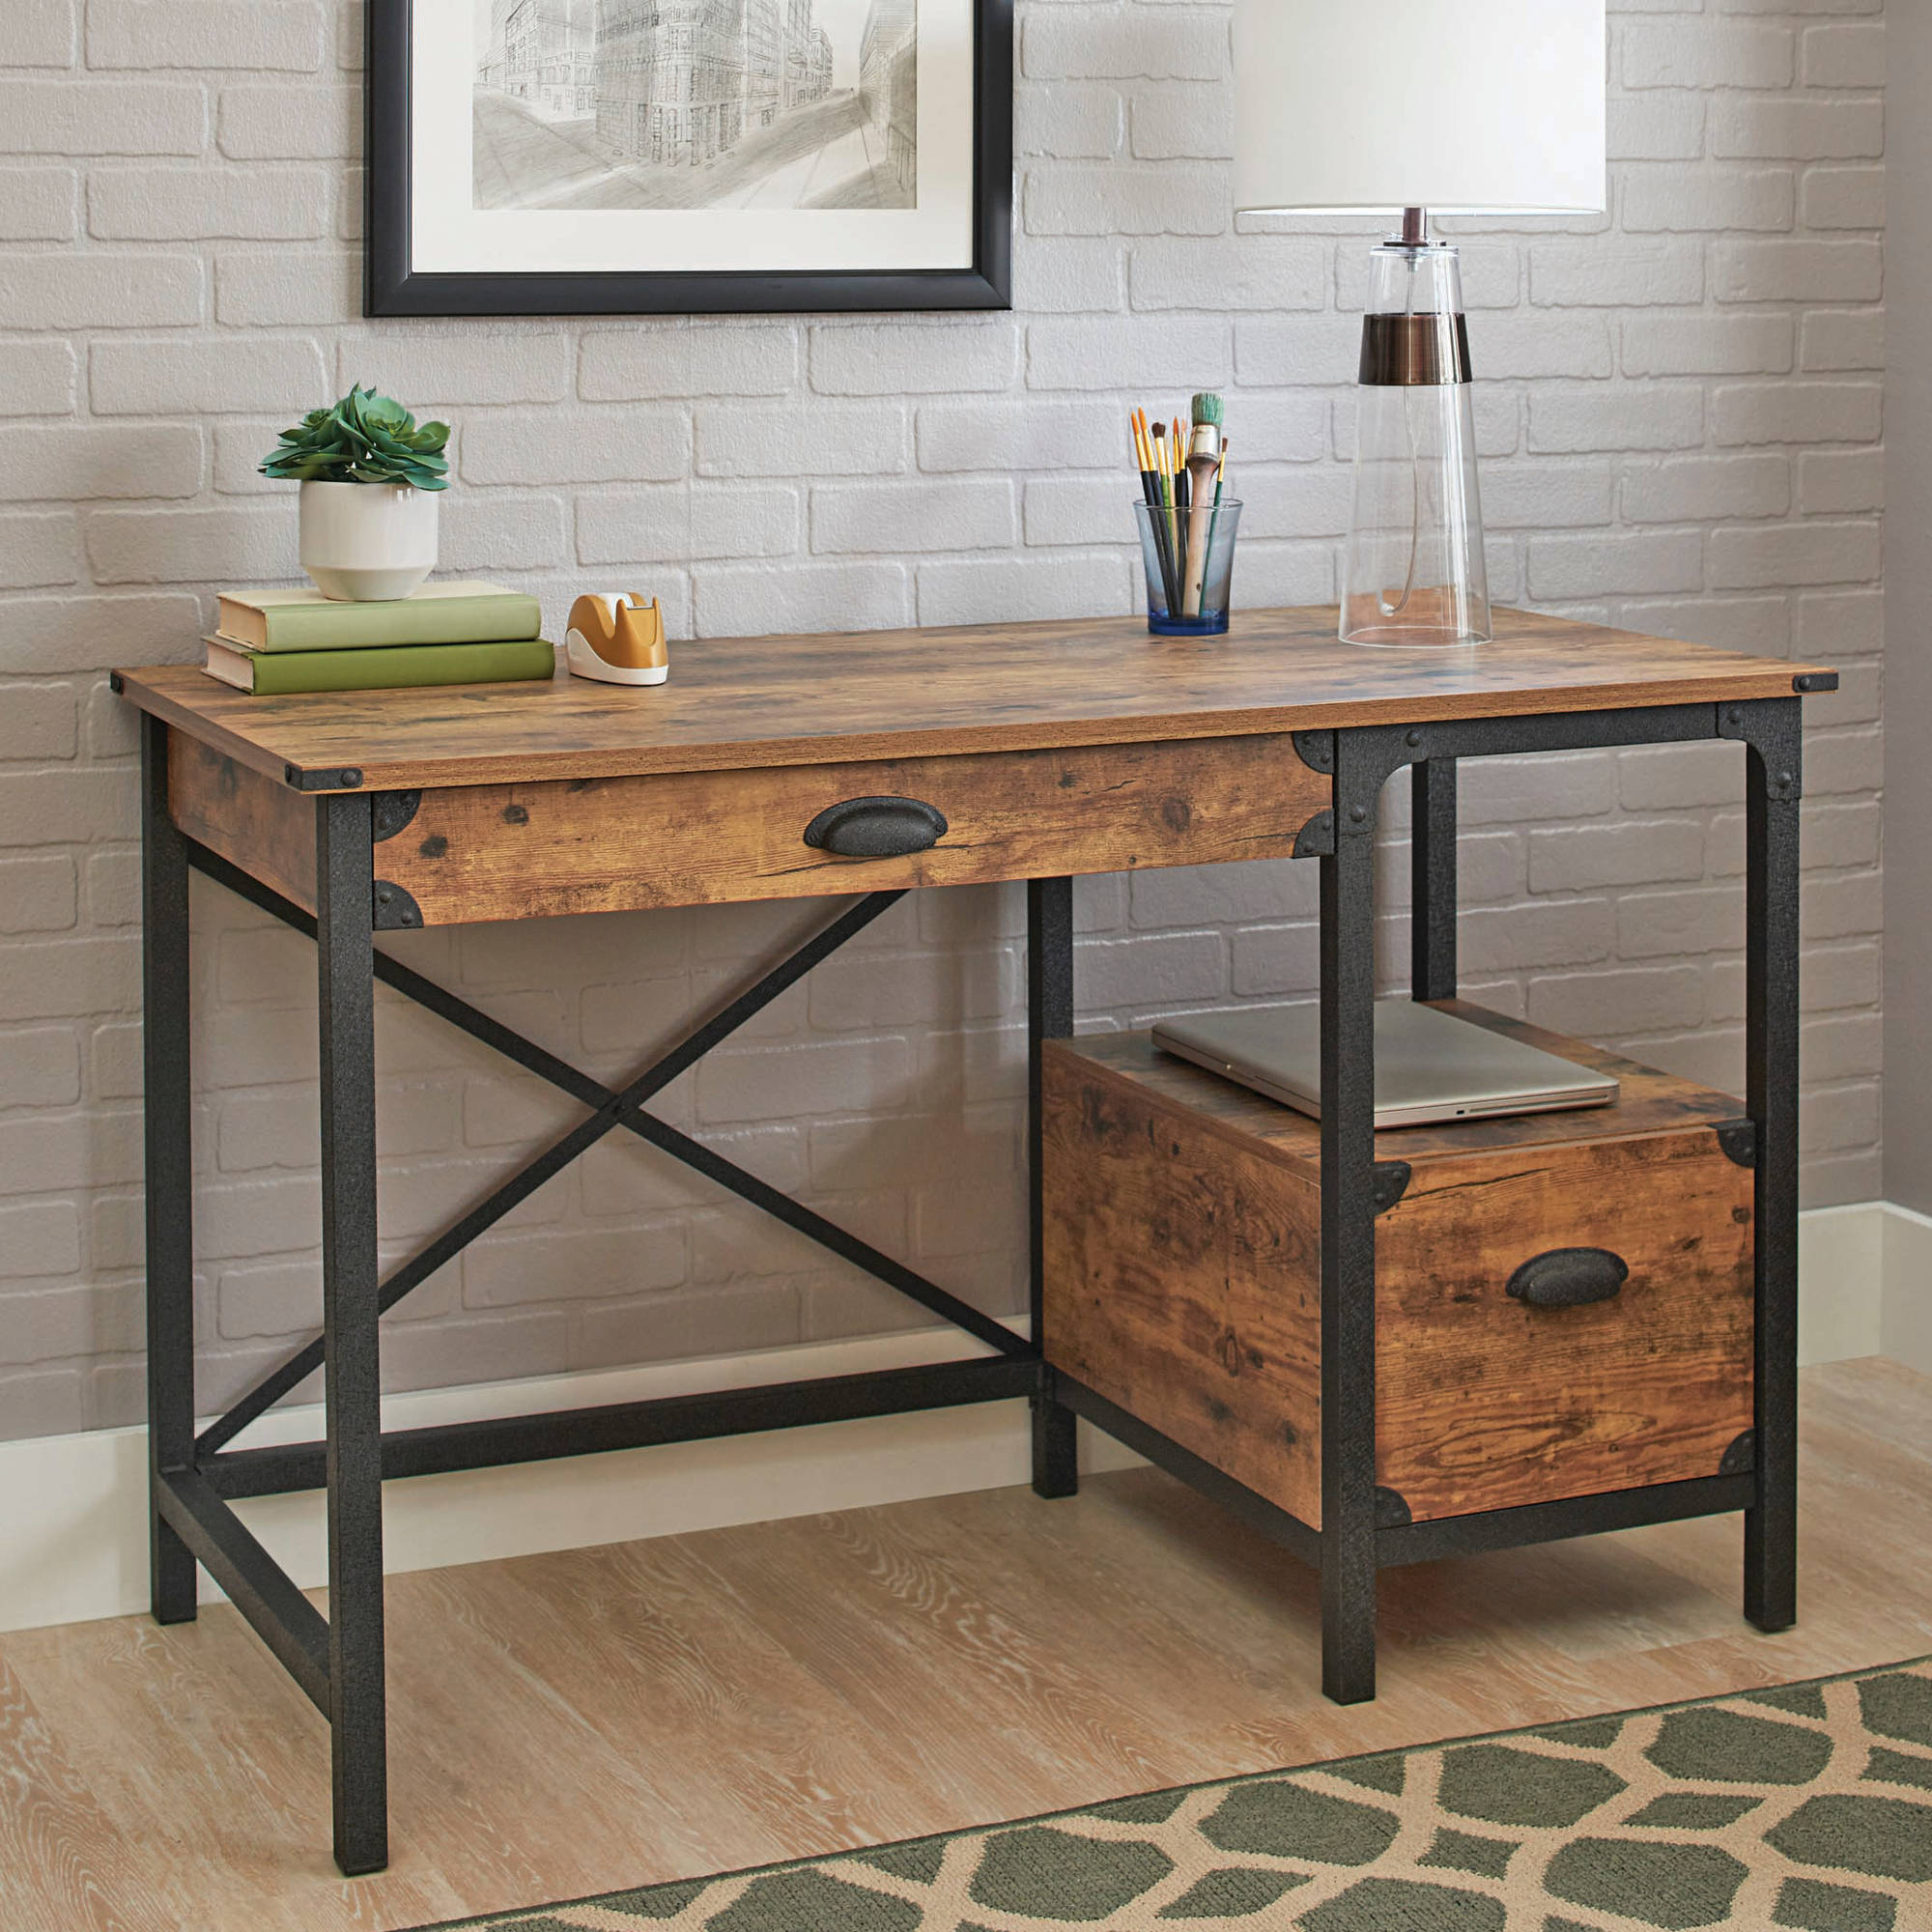 Better Homes And Gardens Rustic Country Desk Weathered Pine Finish